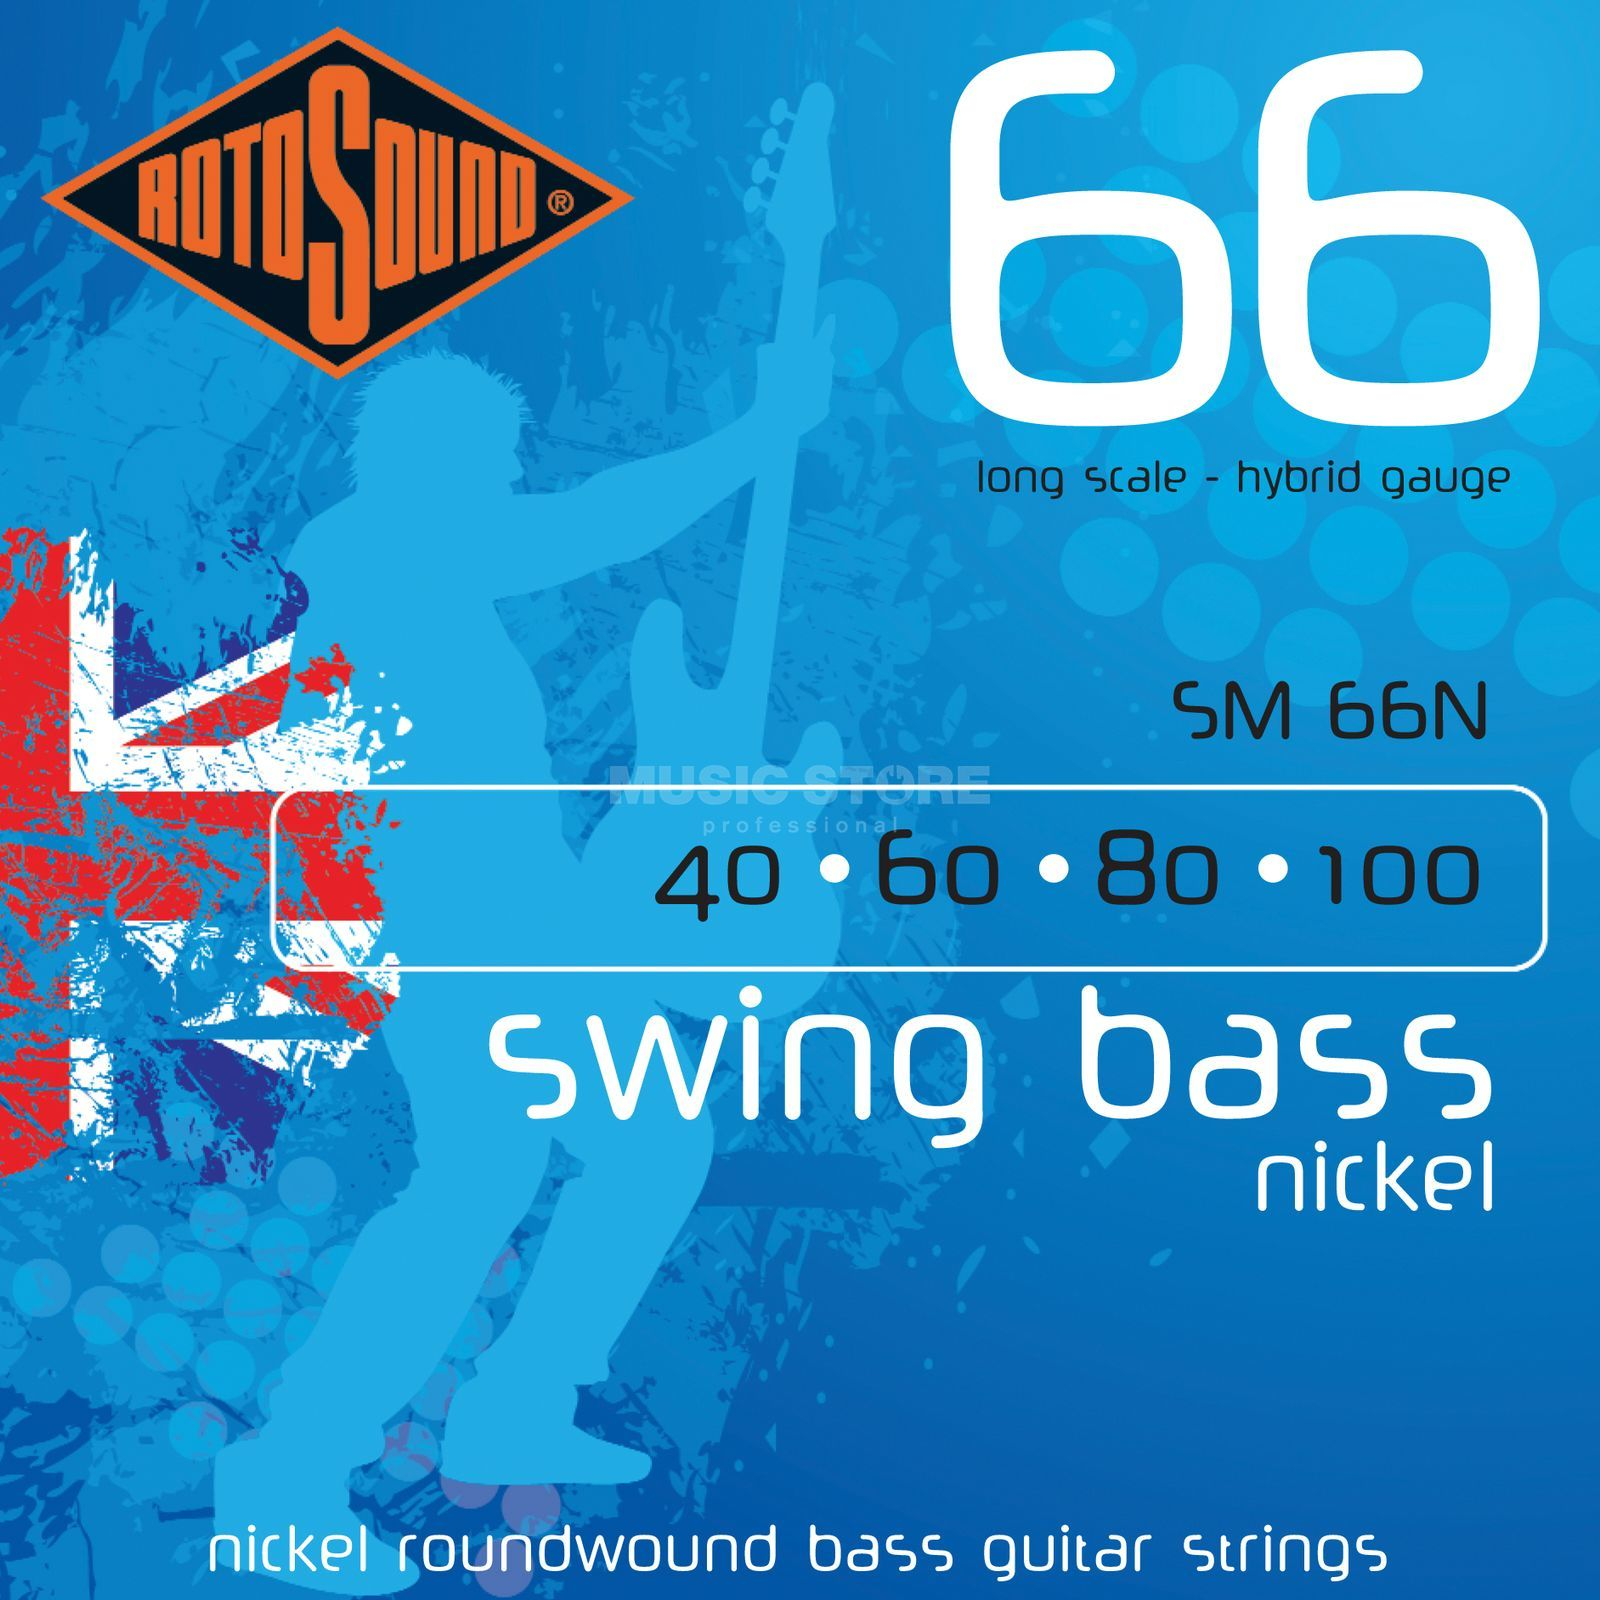 Rotosound Bass Strings,40-100,Nickel 4 string set Product Image